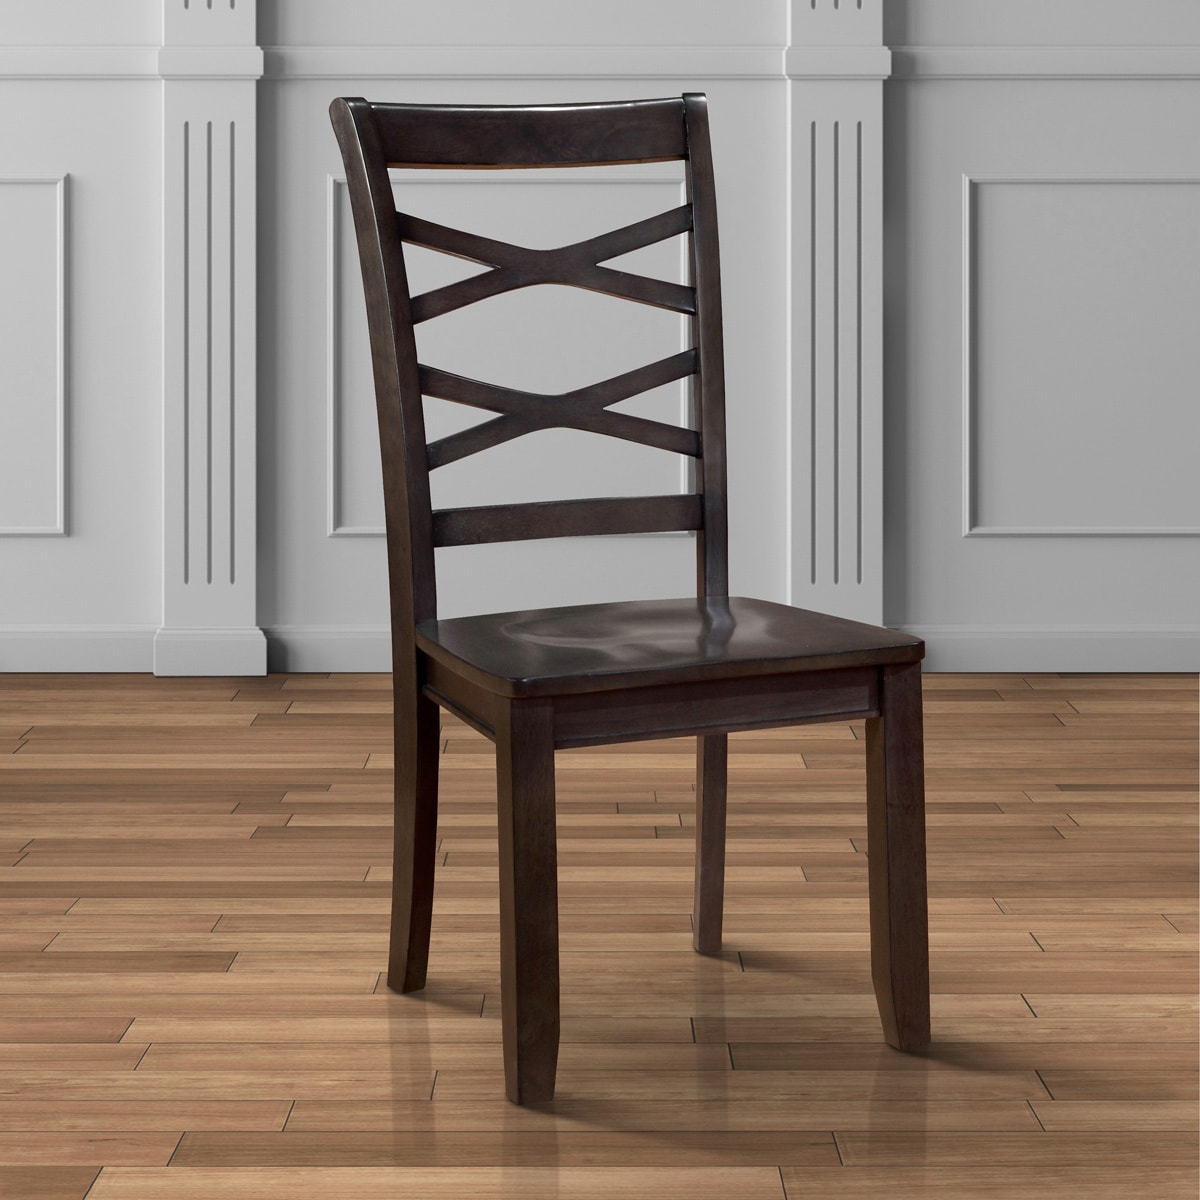 Exceptional Furniture Of America Crane Country Style X Back Dining Chairs (Set Of 2)    Walmart.com